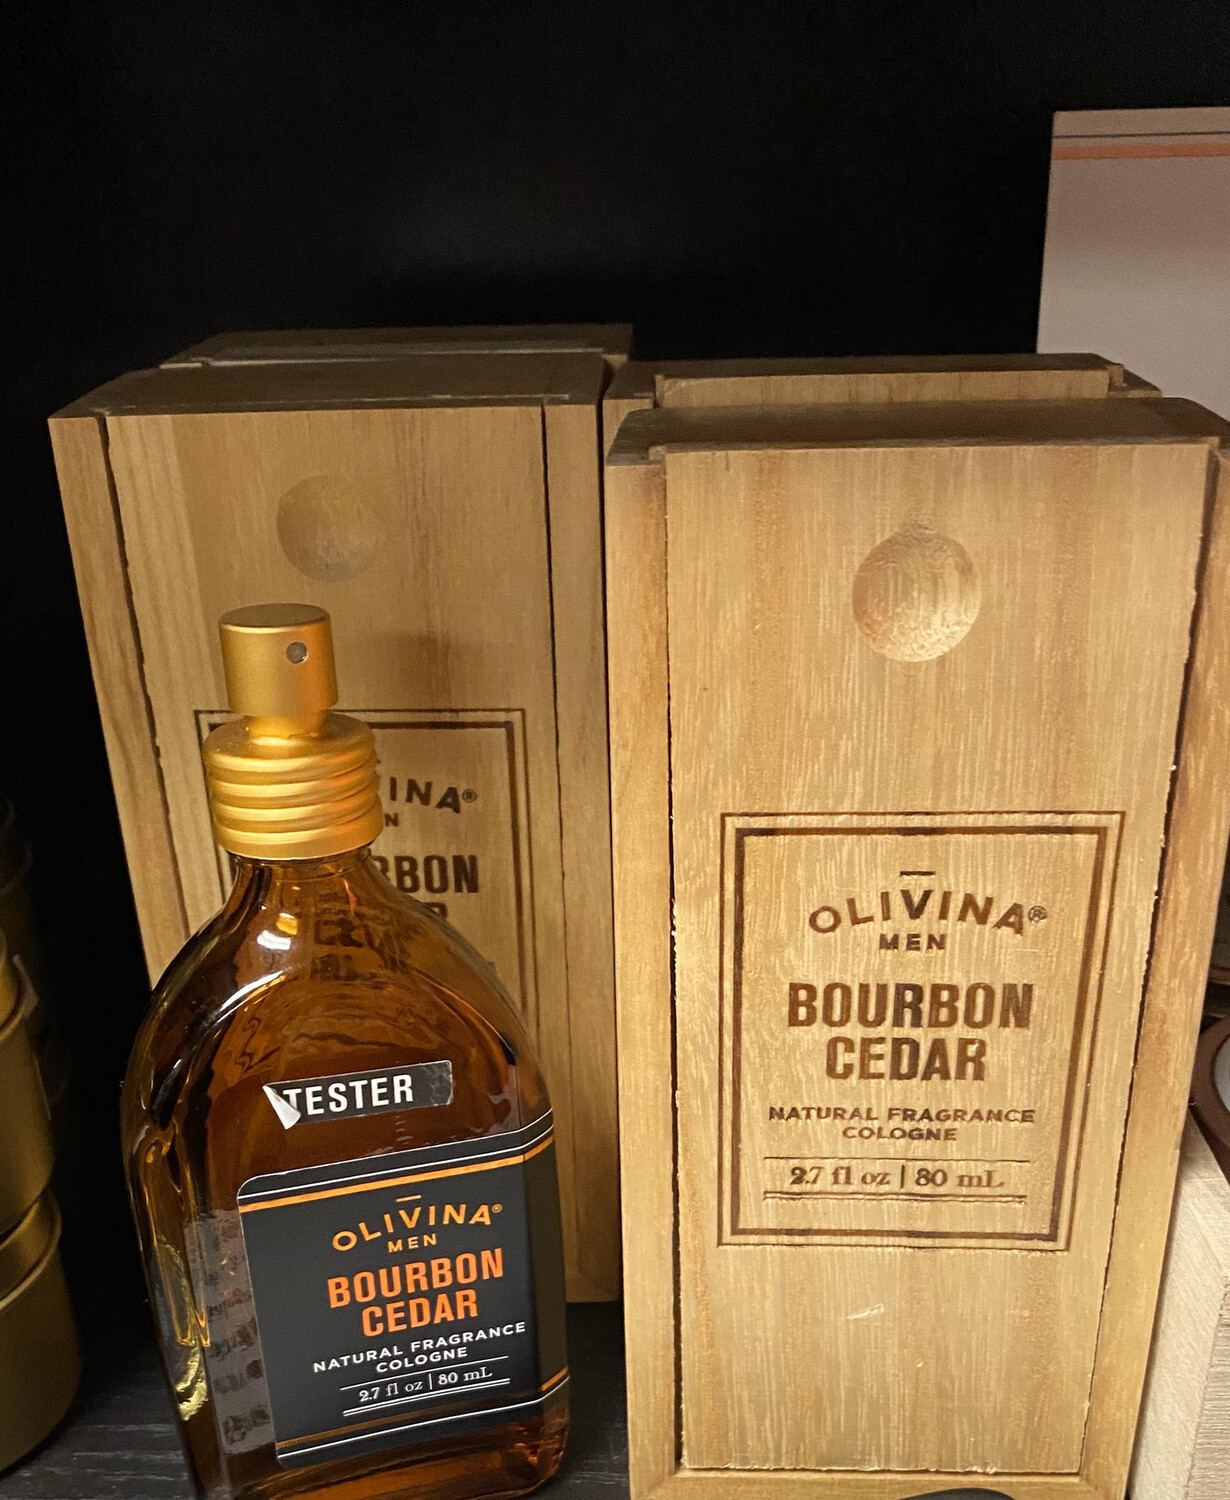 Olivina Bourbon Cedar Cologne In Box